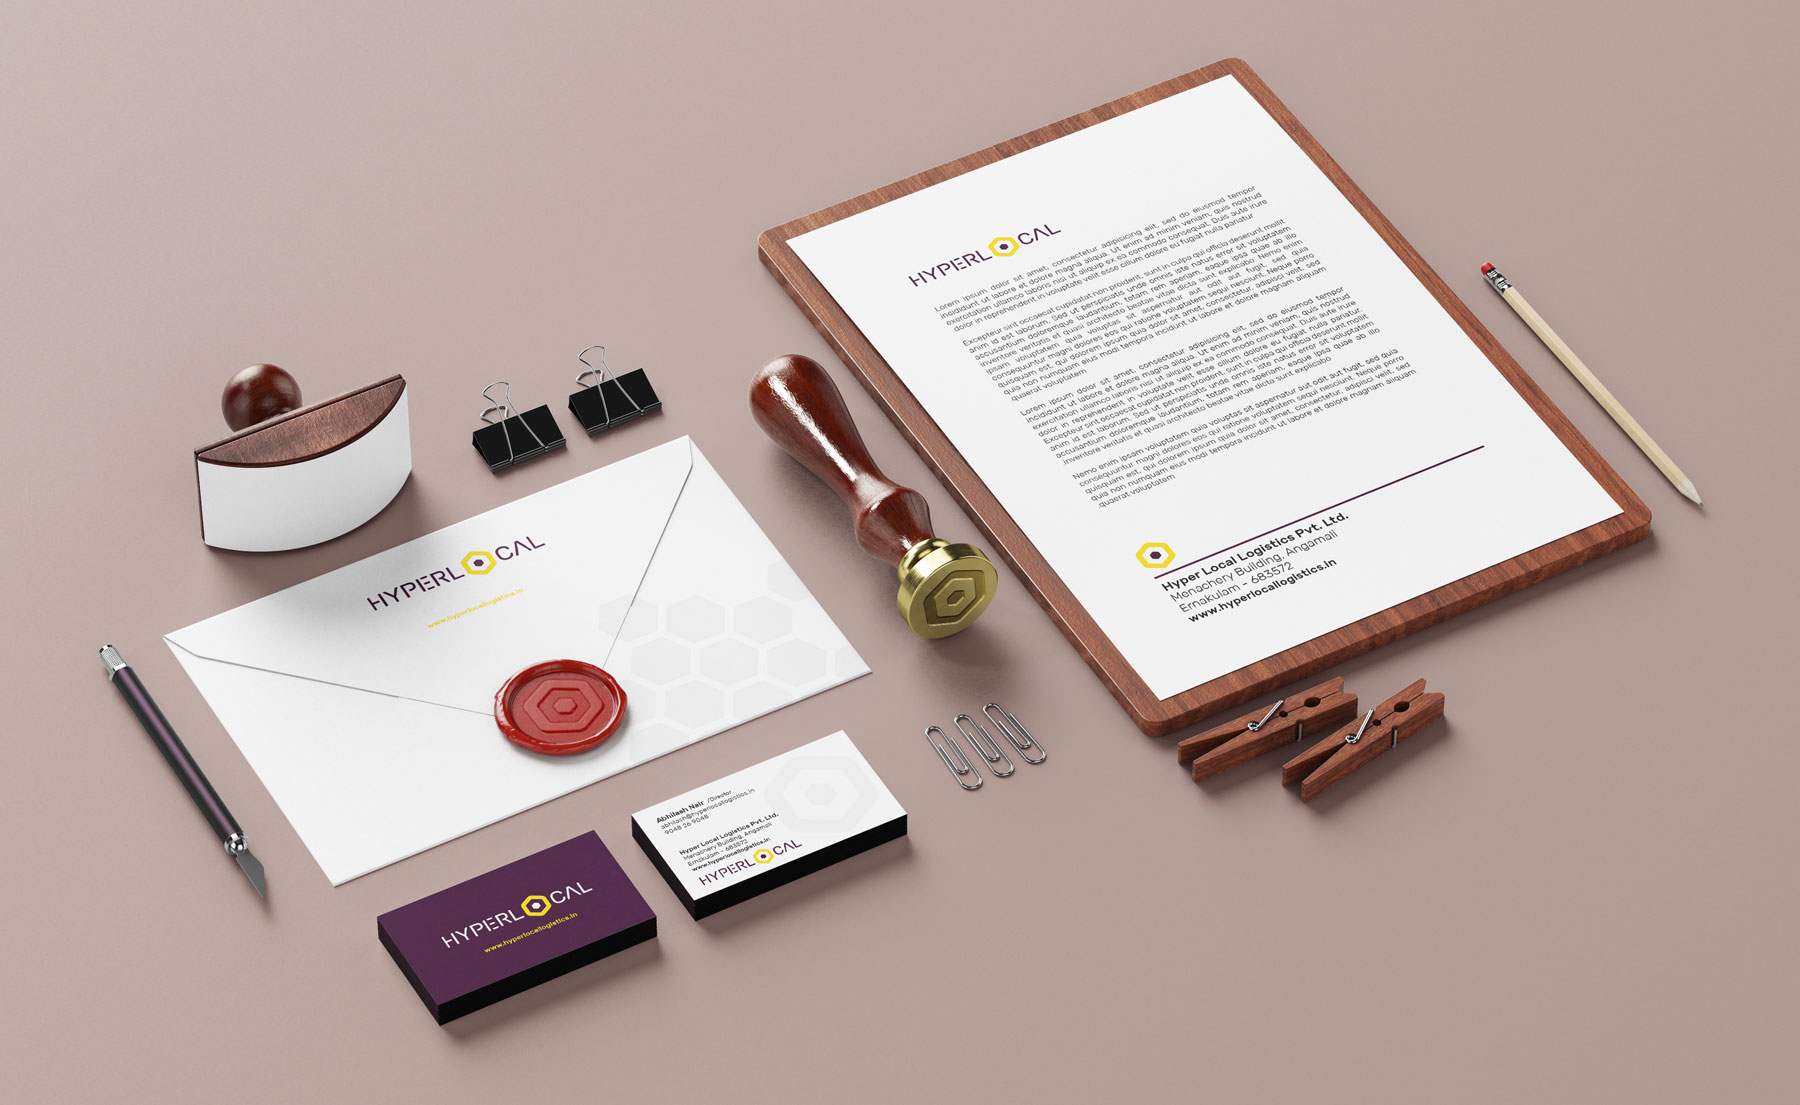 Stationary design for logistic company based in Kerala